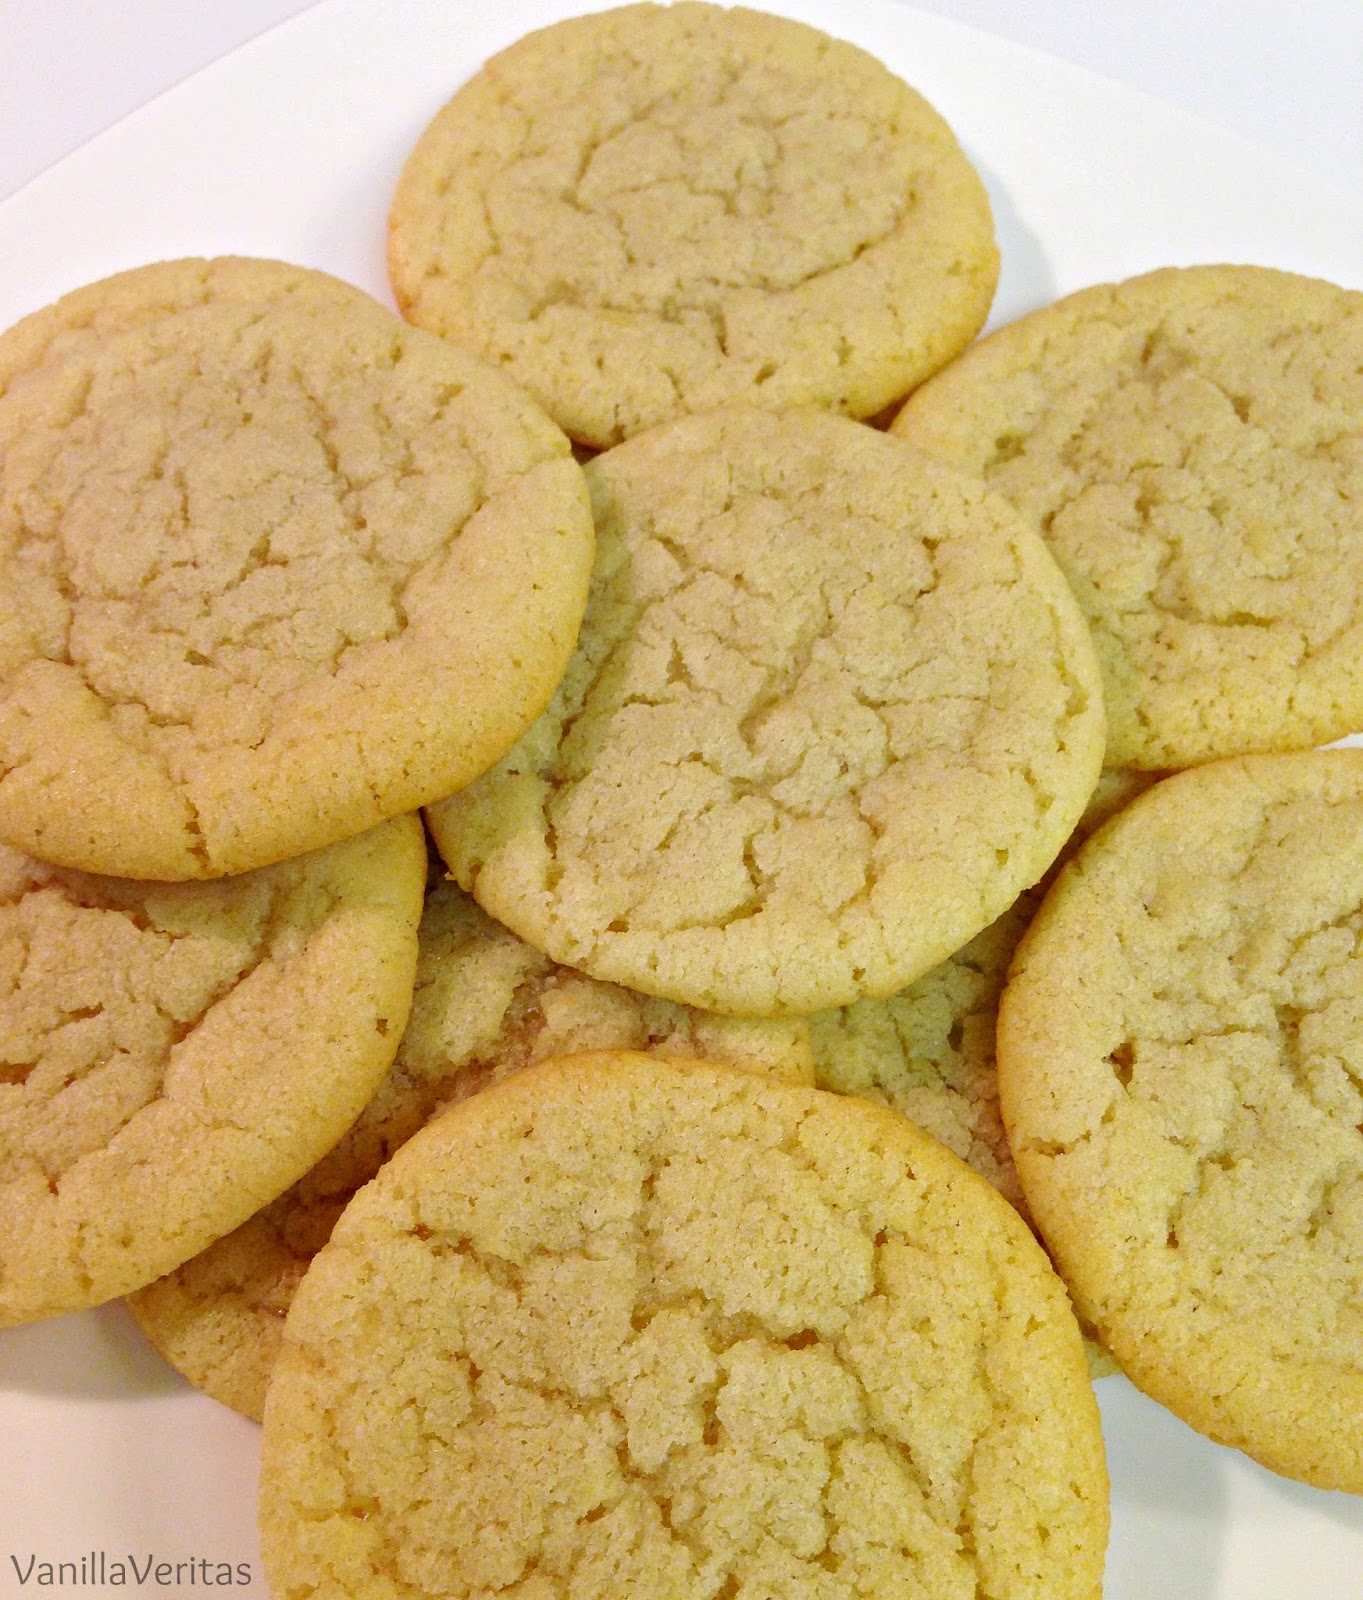 cookie | sugar | sugar cookies | food court | mall | cookie co | mrs fields | m&m cookies | best | easy | yum | yummy | yummiest | chewy